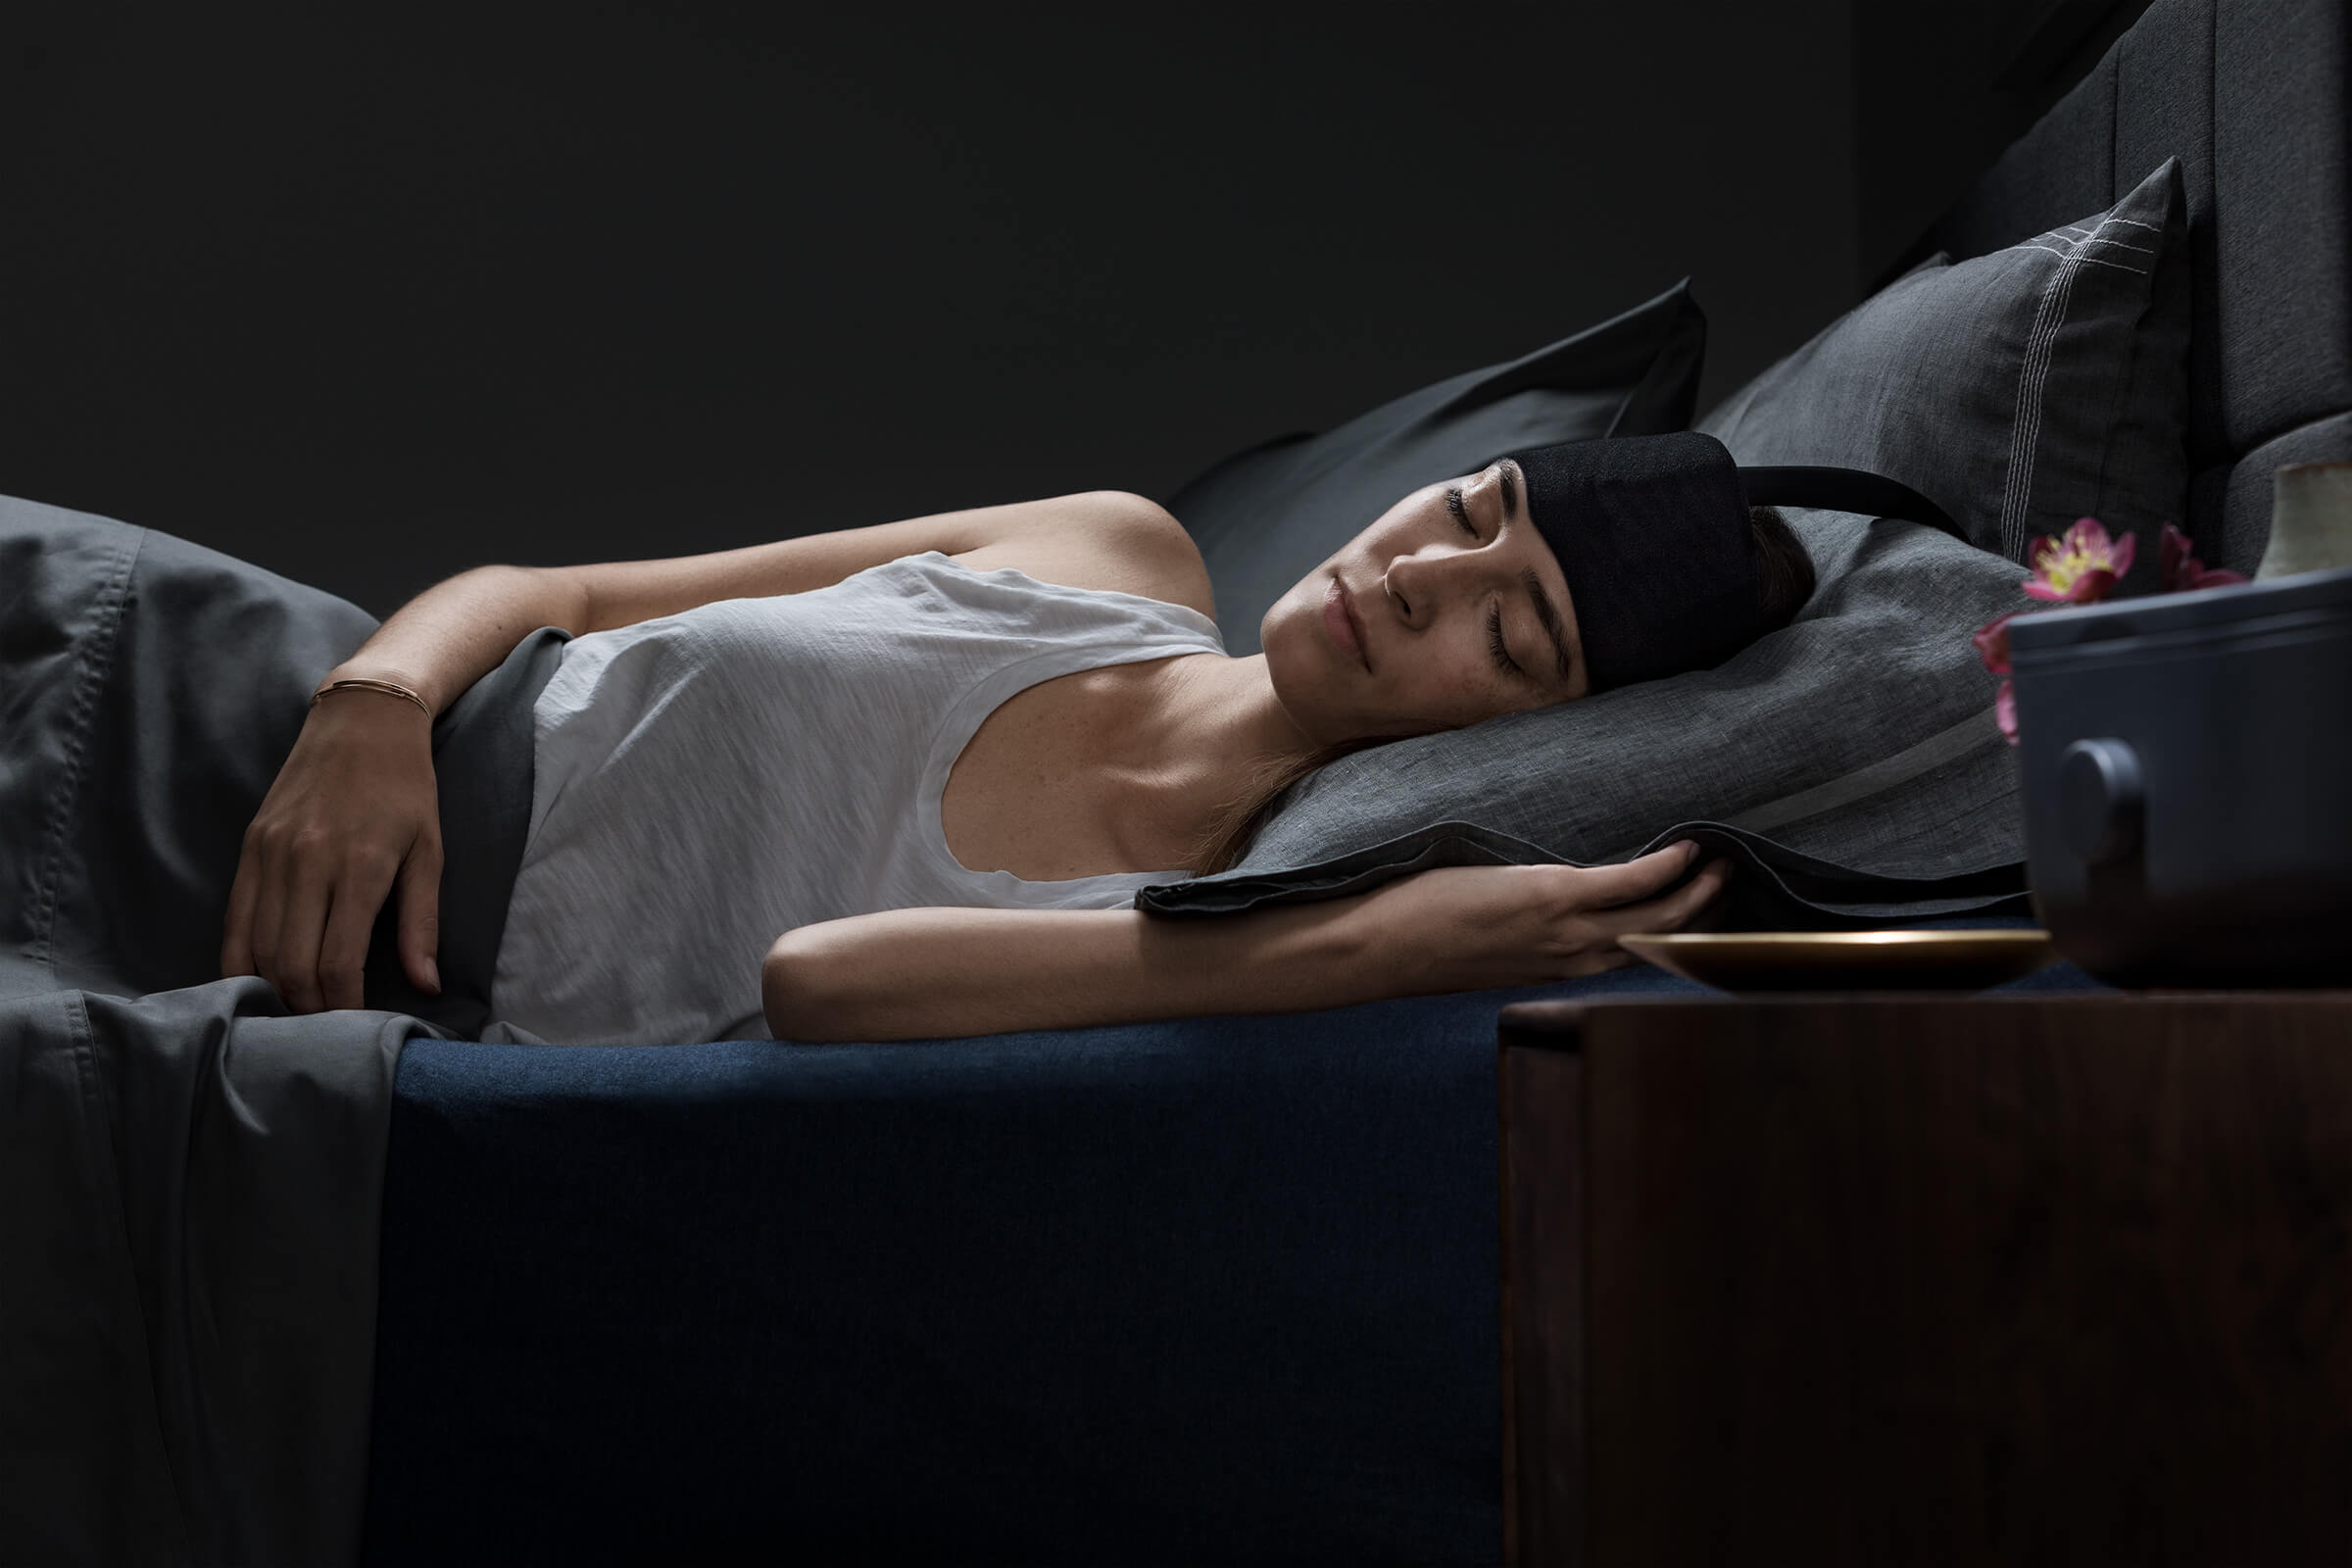 Ebb™ Insomnia Therapy is the first and only FDA-cleared device that reduces the time it takes to both fall asleep and enter deeper, more restorative sleep. Invented by an internationally recognized leader in sleep medicine, Eric Nofzinger, MD, Ebb works with the body to gently cool and calm the overactive mind.